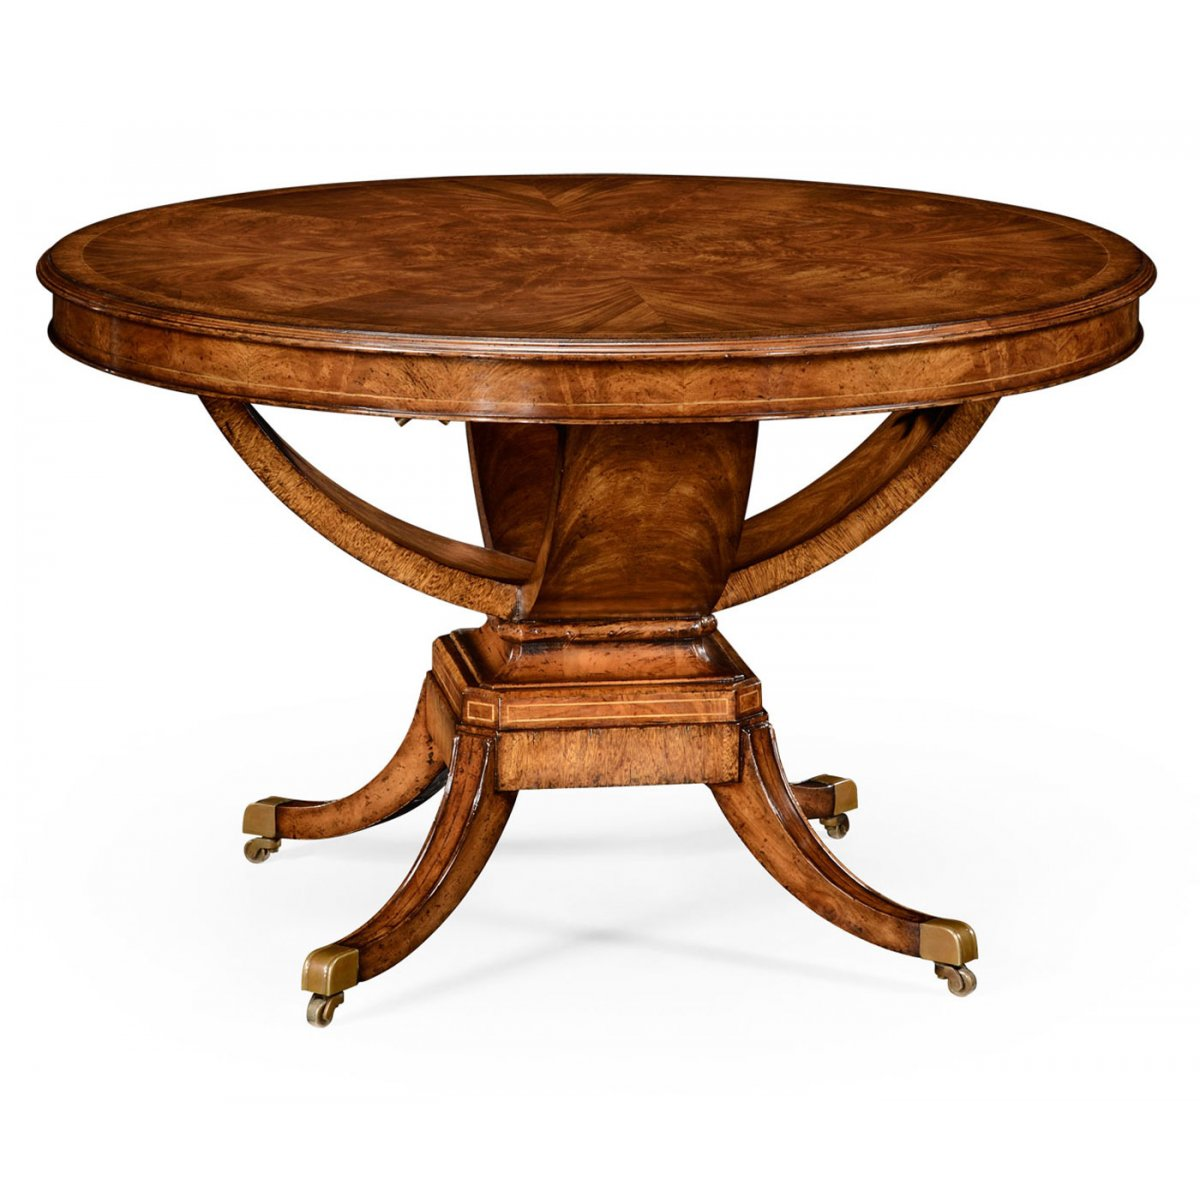 6 seater round dining table walnut swanky interiors for Round dining table for 6